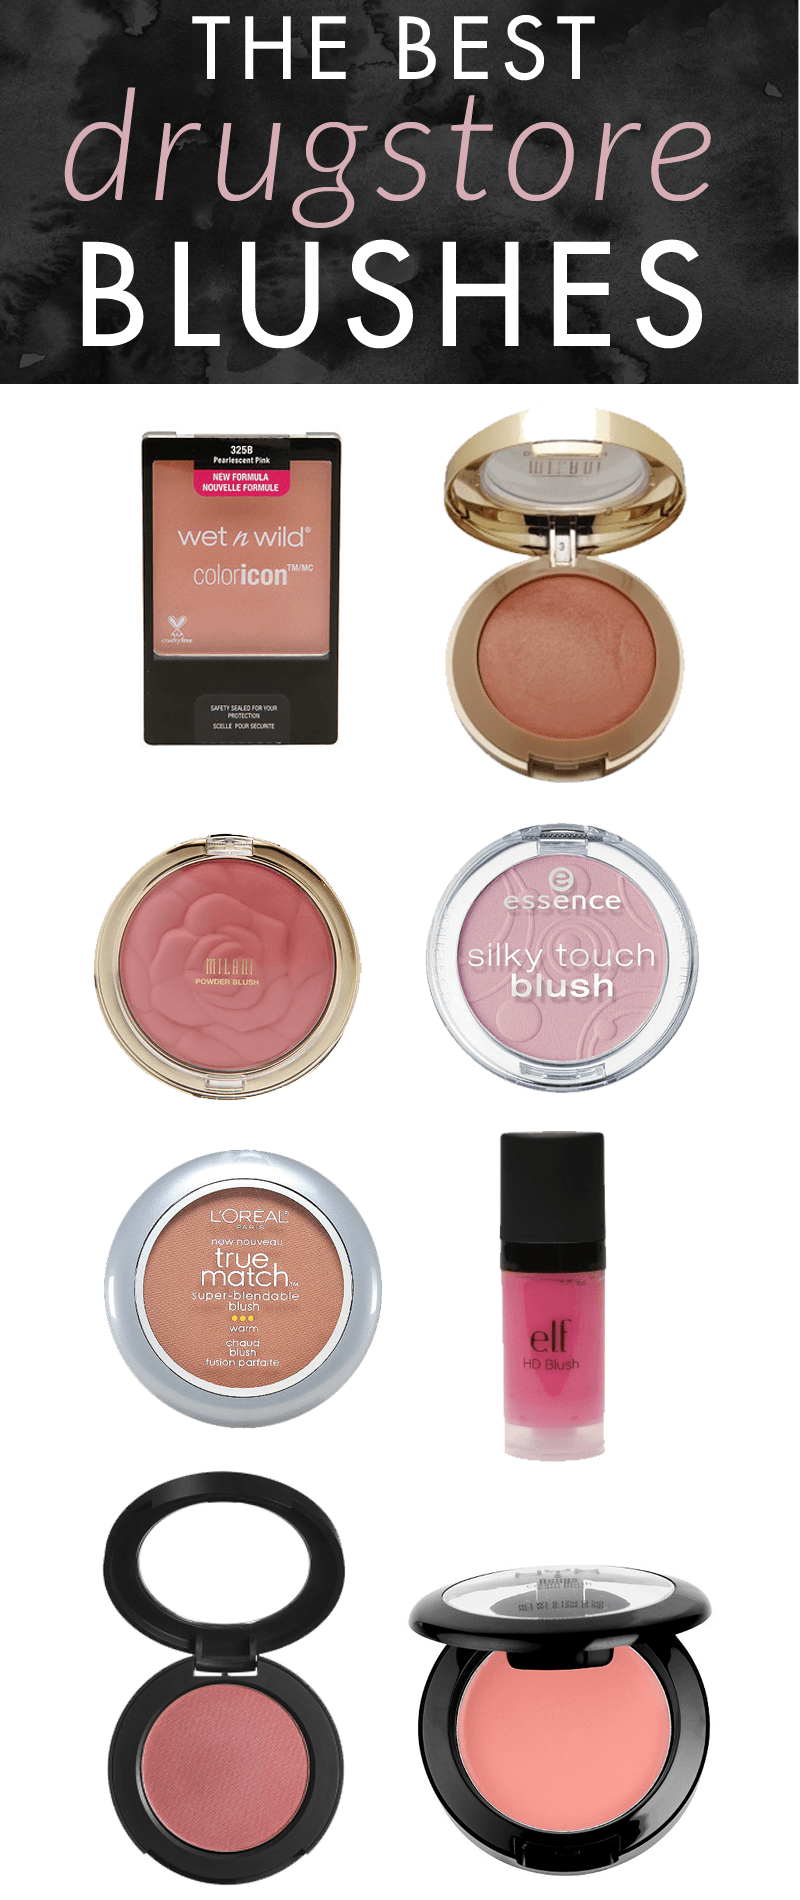 Drugstore Makeup Dupes: The Best Drugstore Blushes